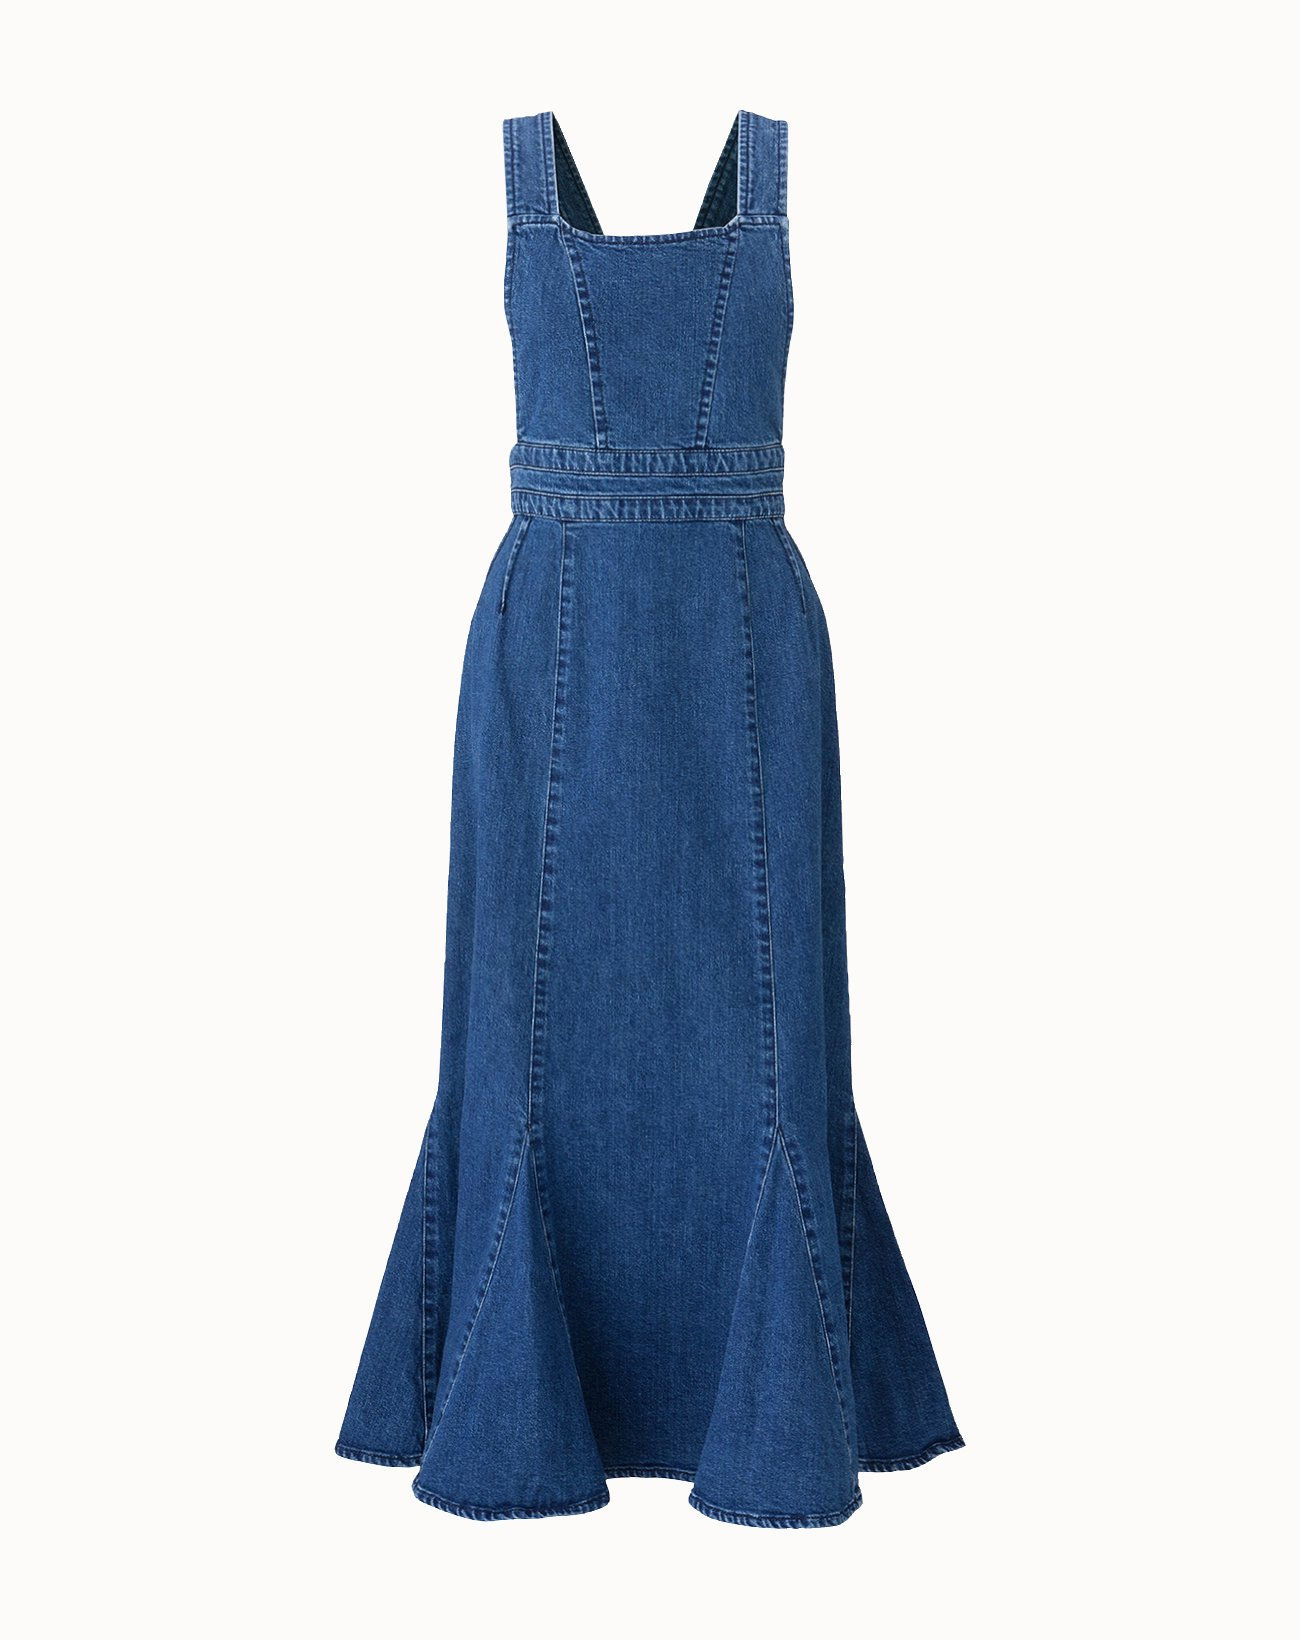 leur logette - 10OZ Stretch Denim Dress - Blue